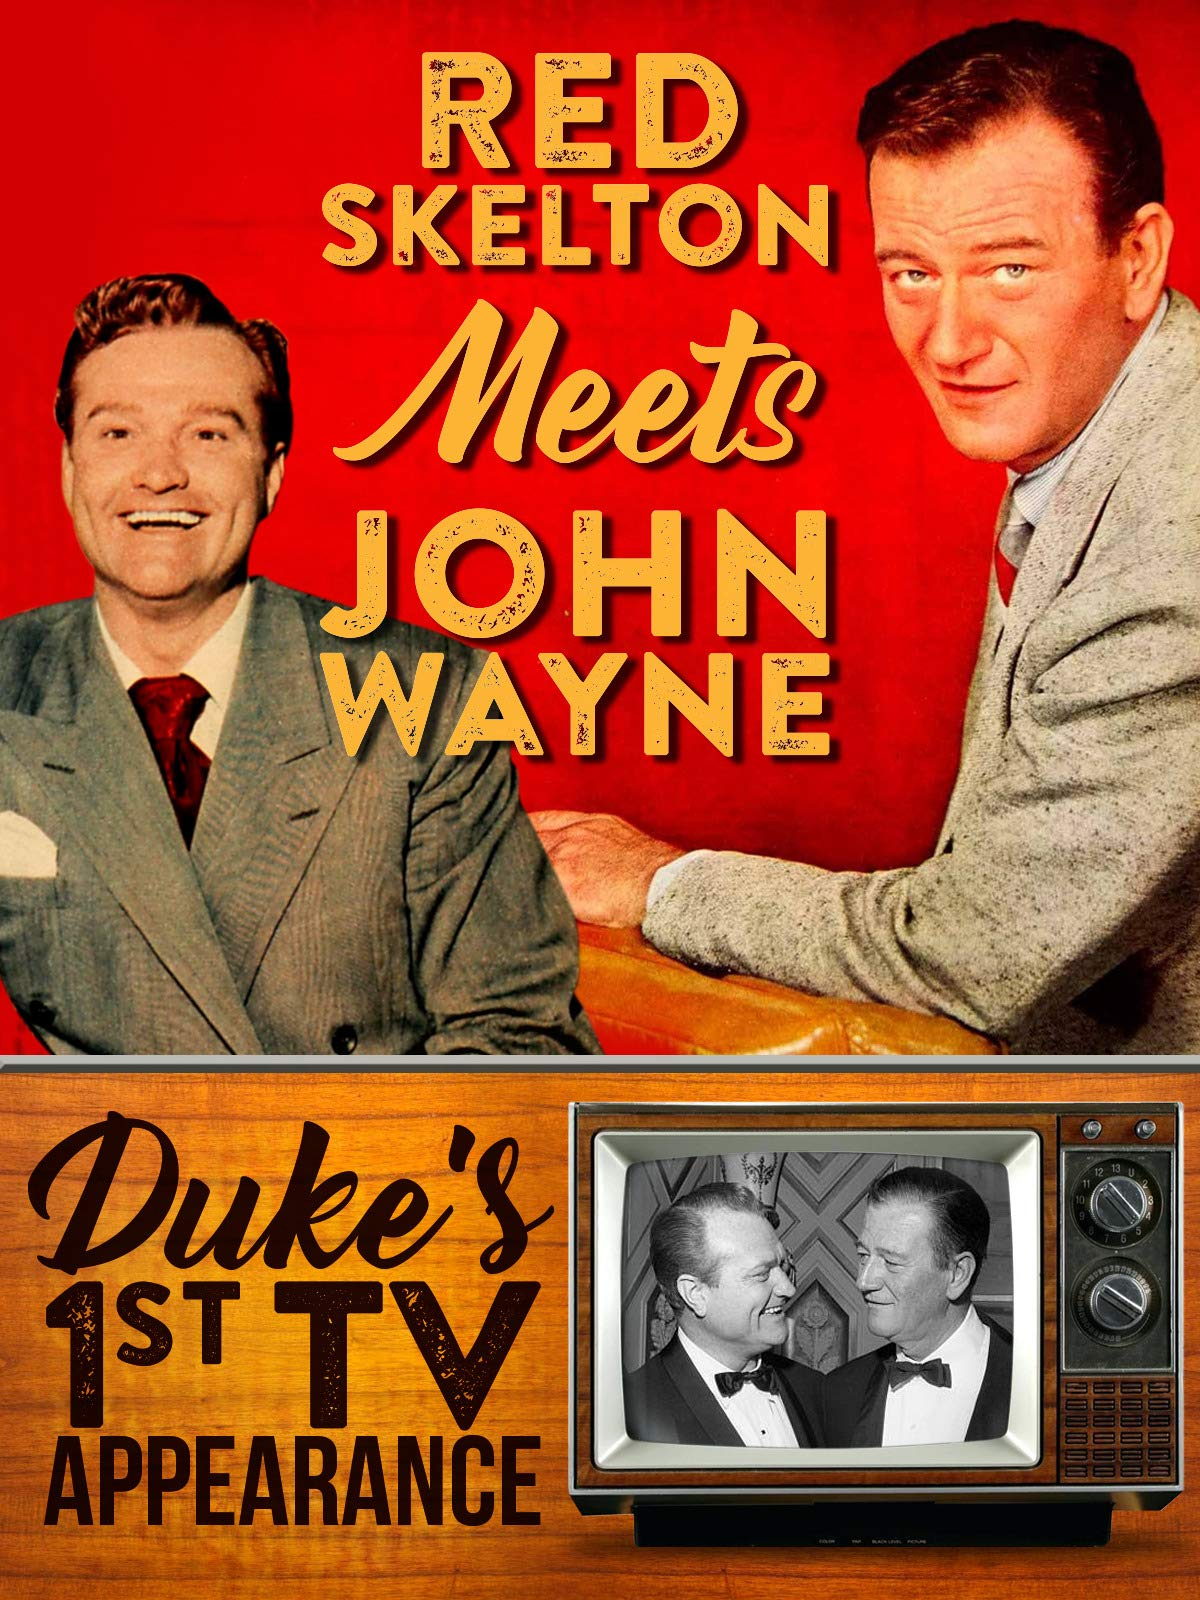 Red Skelton Meets John Wayne - Duke's 1st TV Appearance